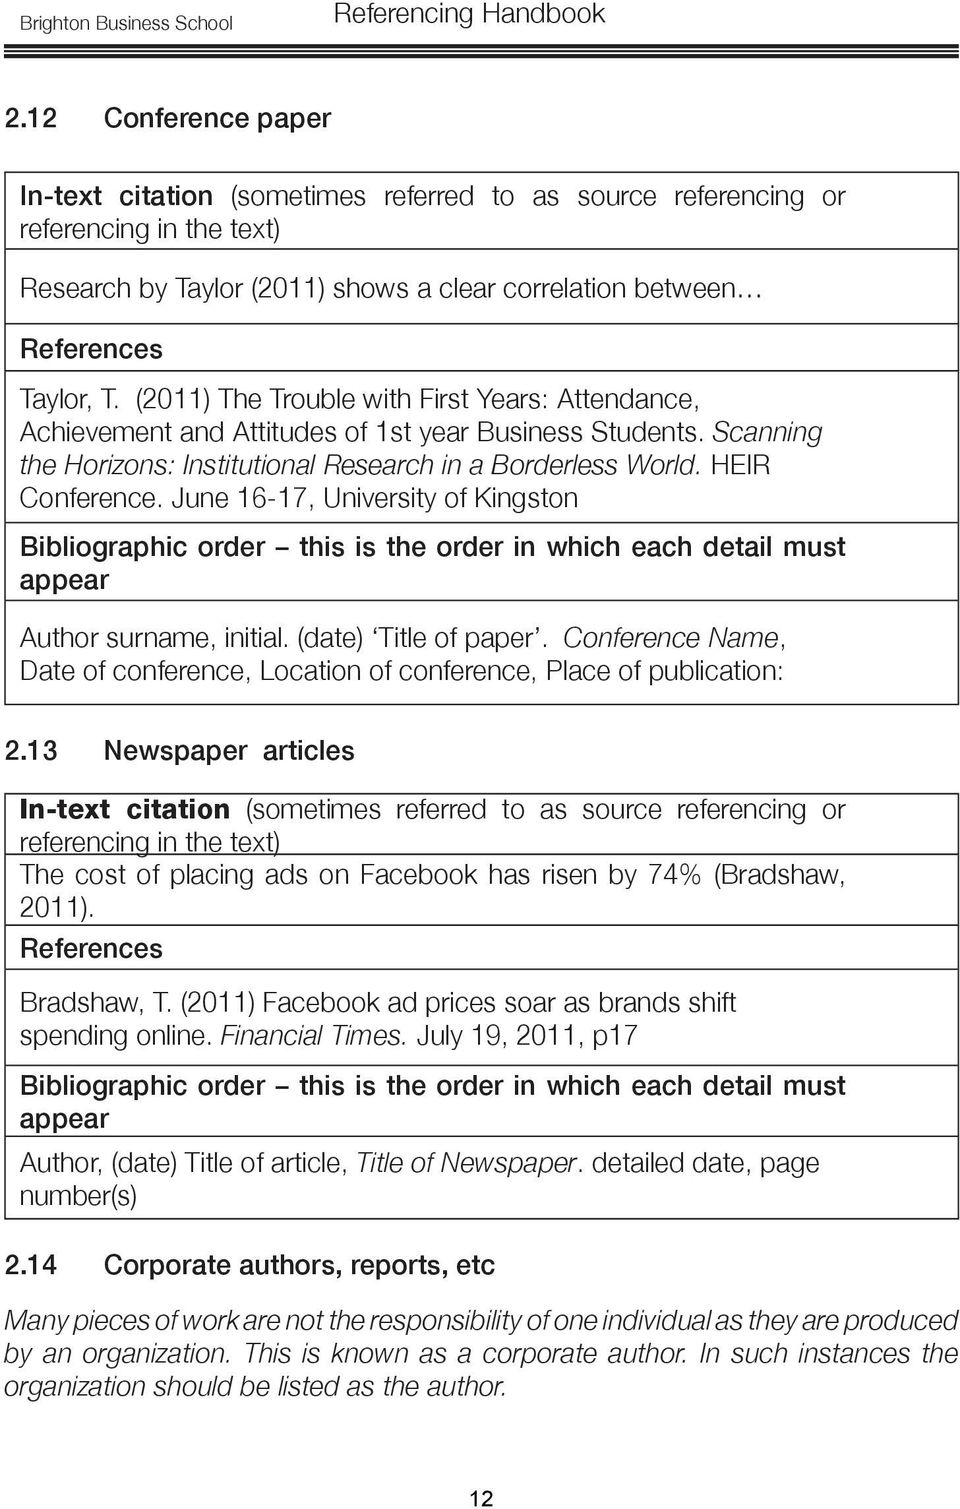 Conference Name, Date of conference, Location of conference, Place of publication: 2.13 Newspaper articles The cost of placing ads on Facebook has risen by 74% (Bradshaw, 2011). Bradshaw, T.